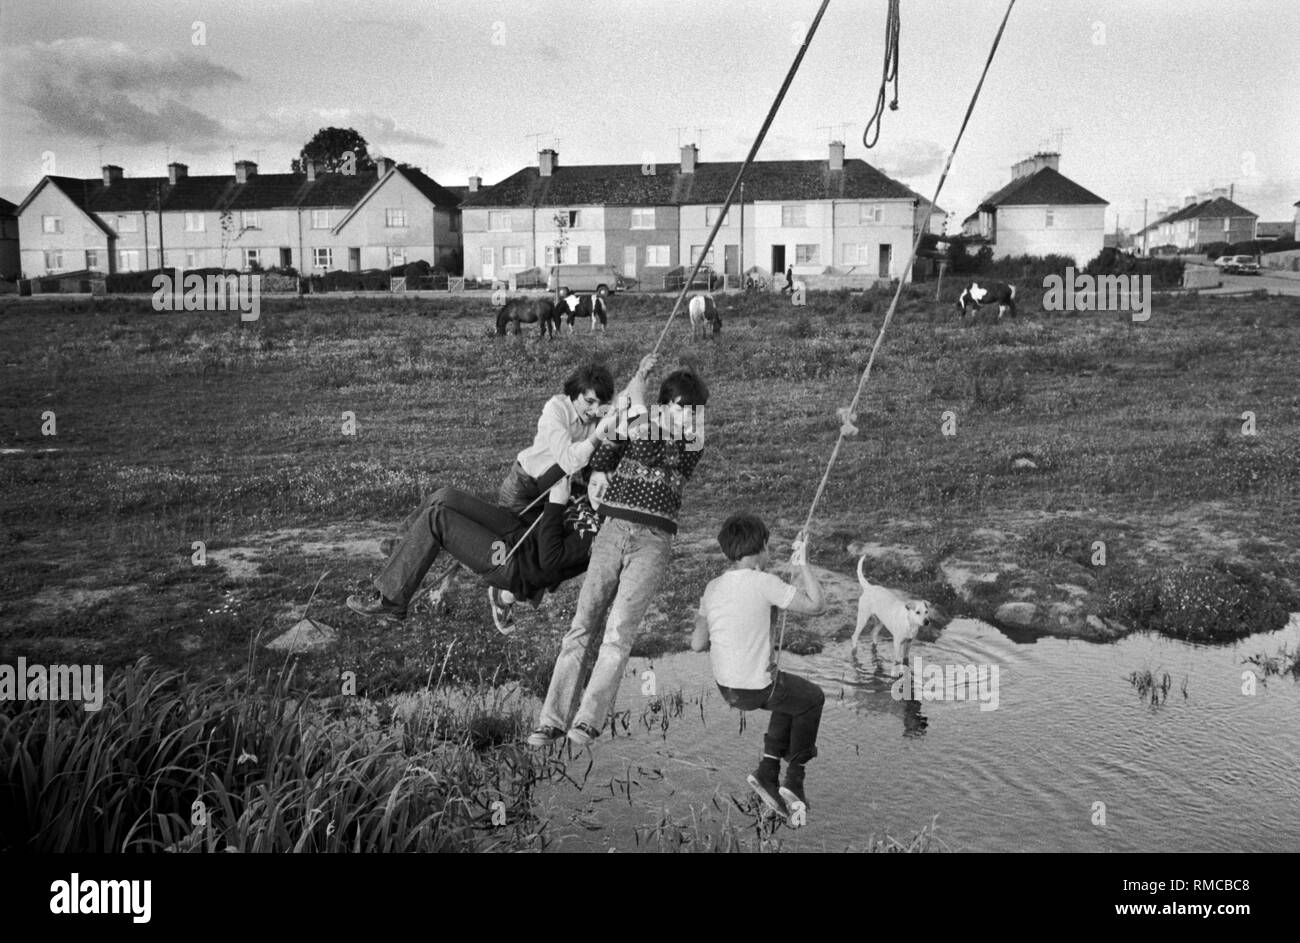 1970s Irish teens playing out side, swinging on ropes having fun together. Friendship.  Limerick, in County Limerick, Eire.  West Coast of Southern Ireland 70s The newly built  South Hill estate. HOMER SYKES - Stock Image